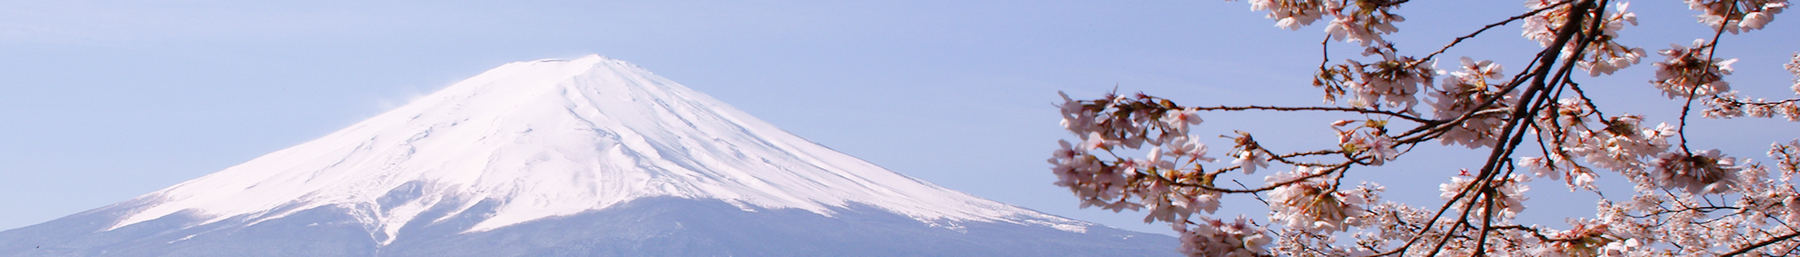 Mount Fuji banner Fuji and cherry blossoms.png